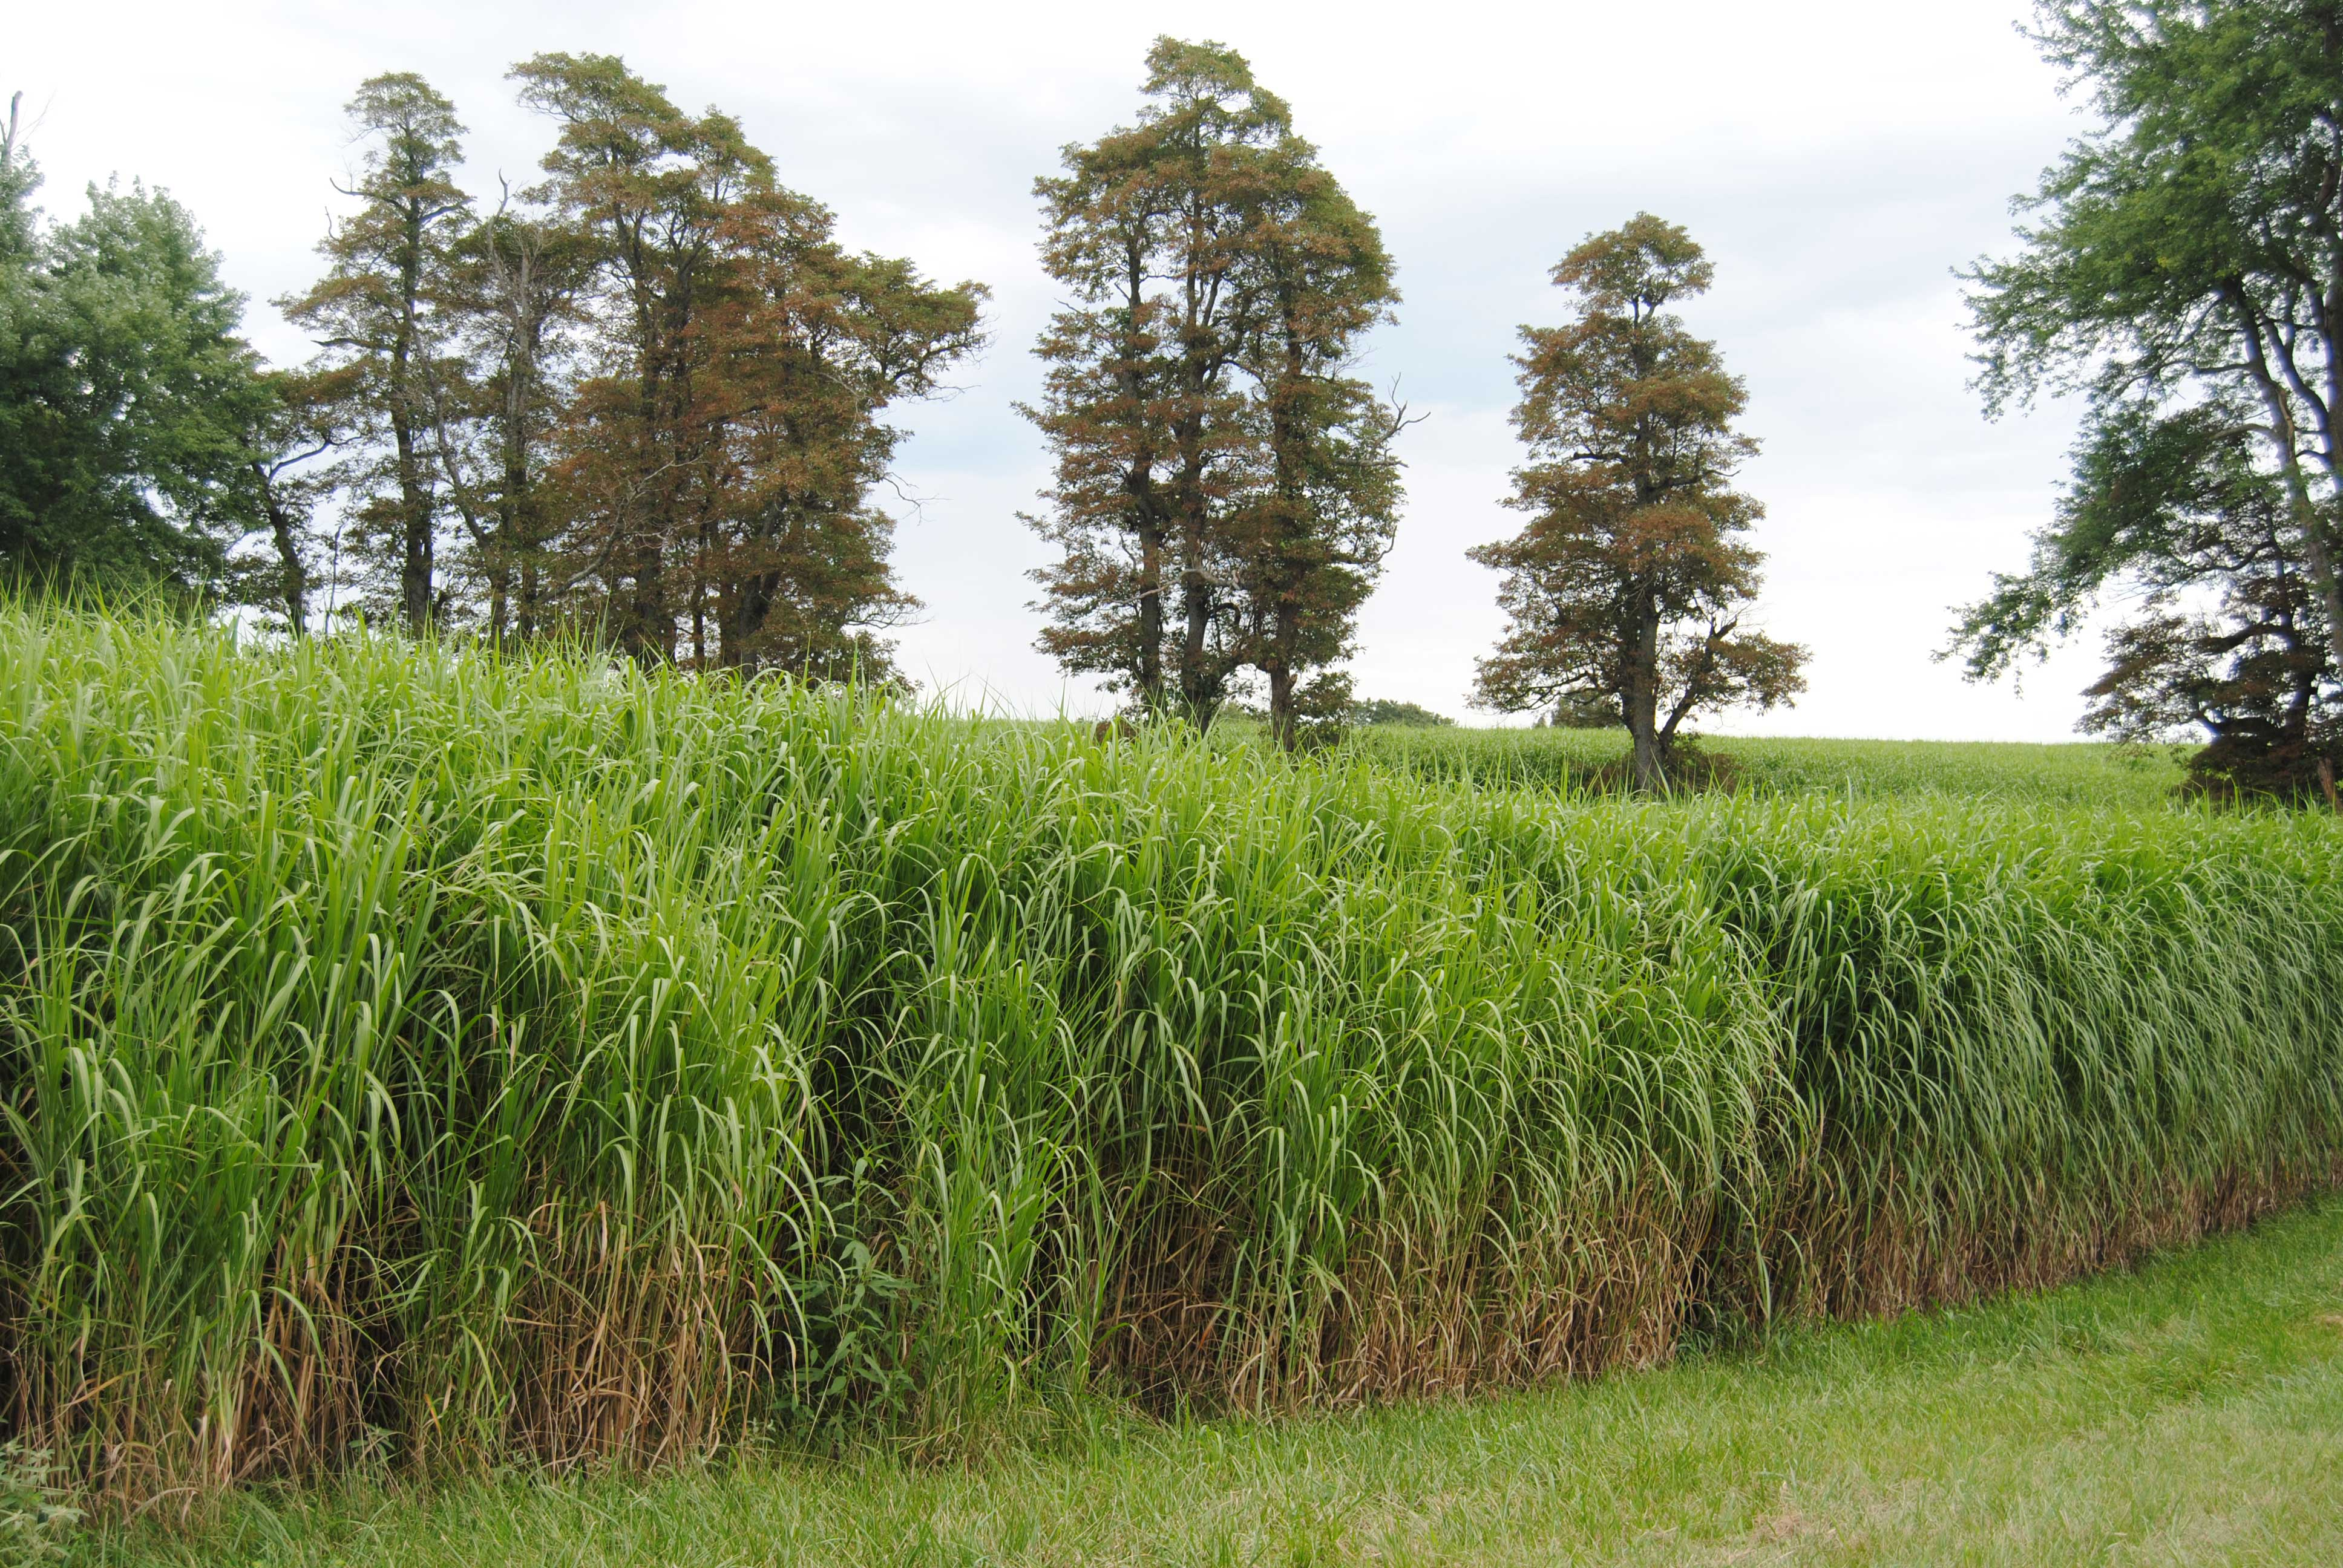 How Miscanthus improves soil and water quality